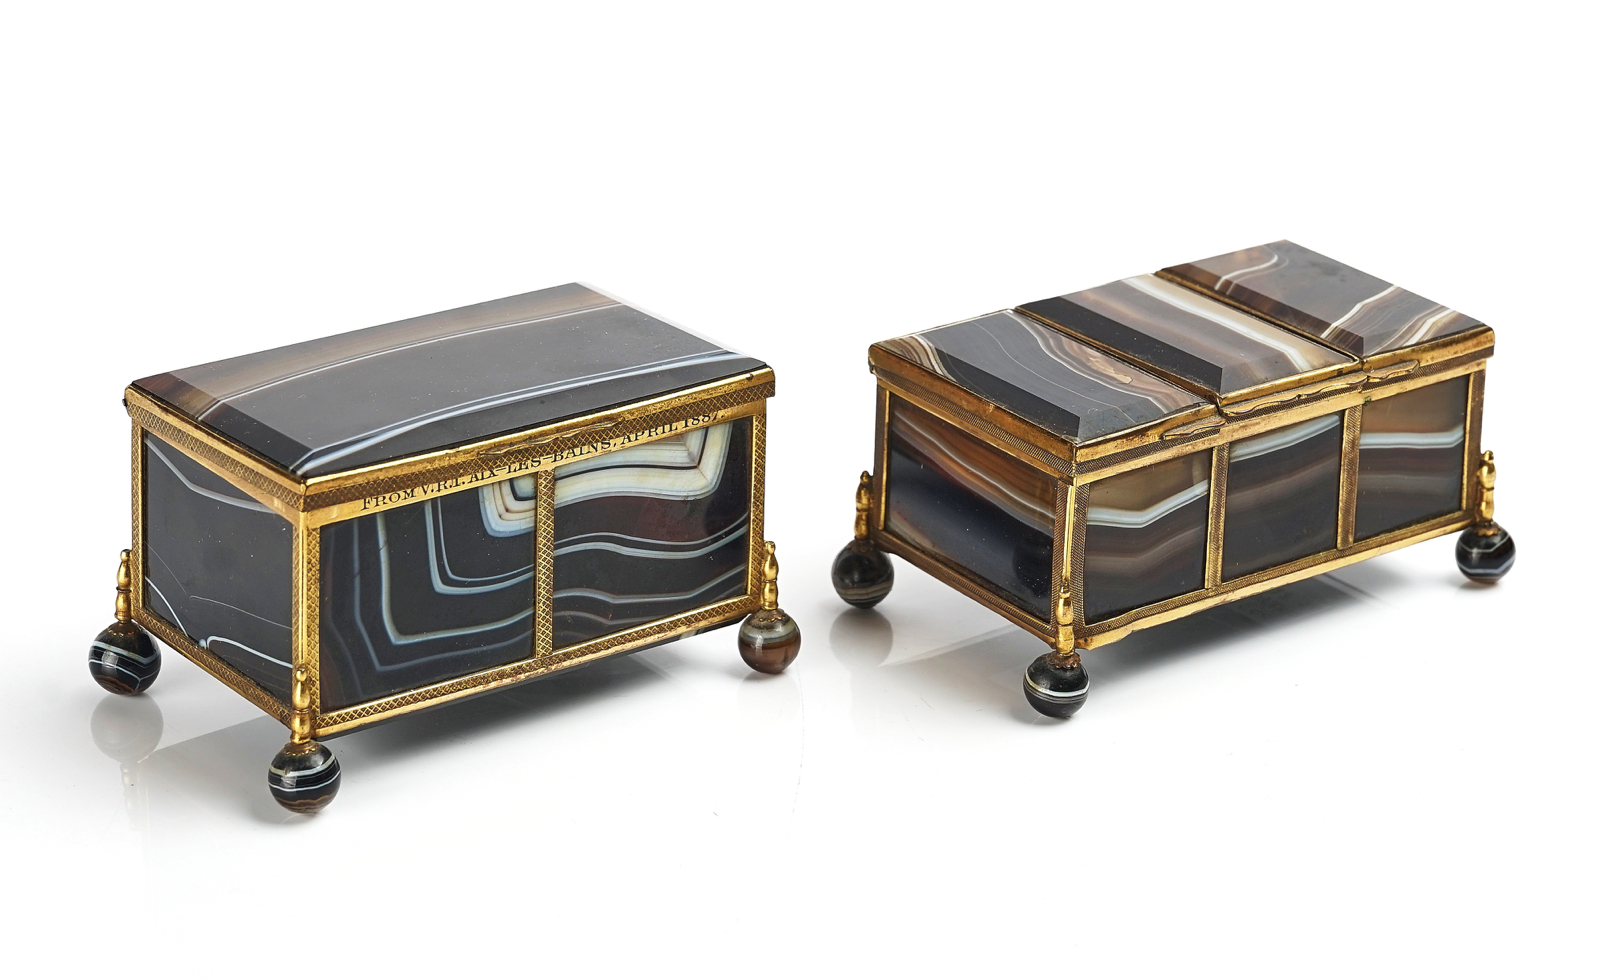 A VICTORIAN ROYAL PRESENTATION FRENCH ORMOLU MOUNTED AGATE CASKET AND ANOTHER SIMILAR